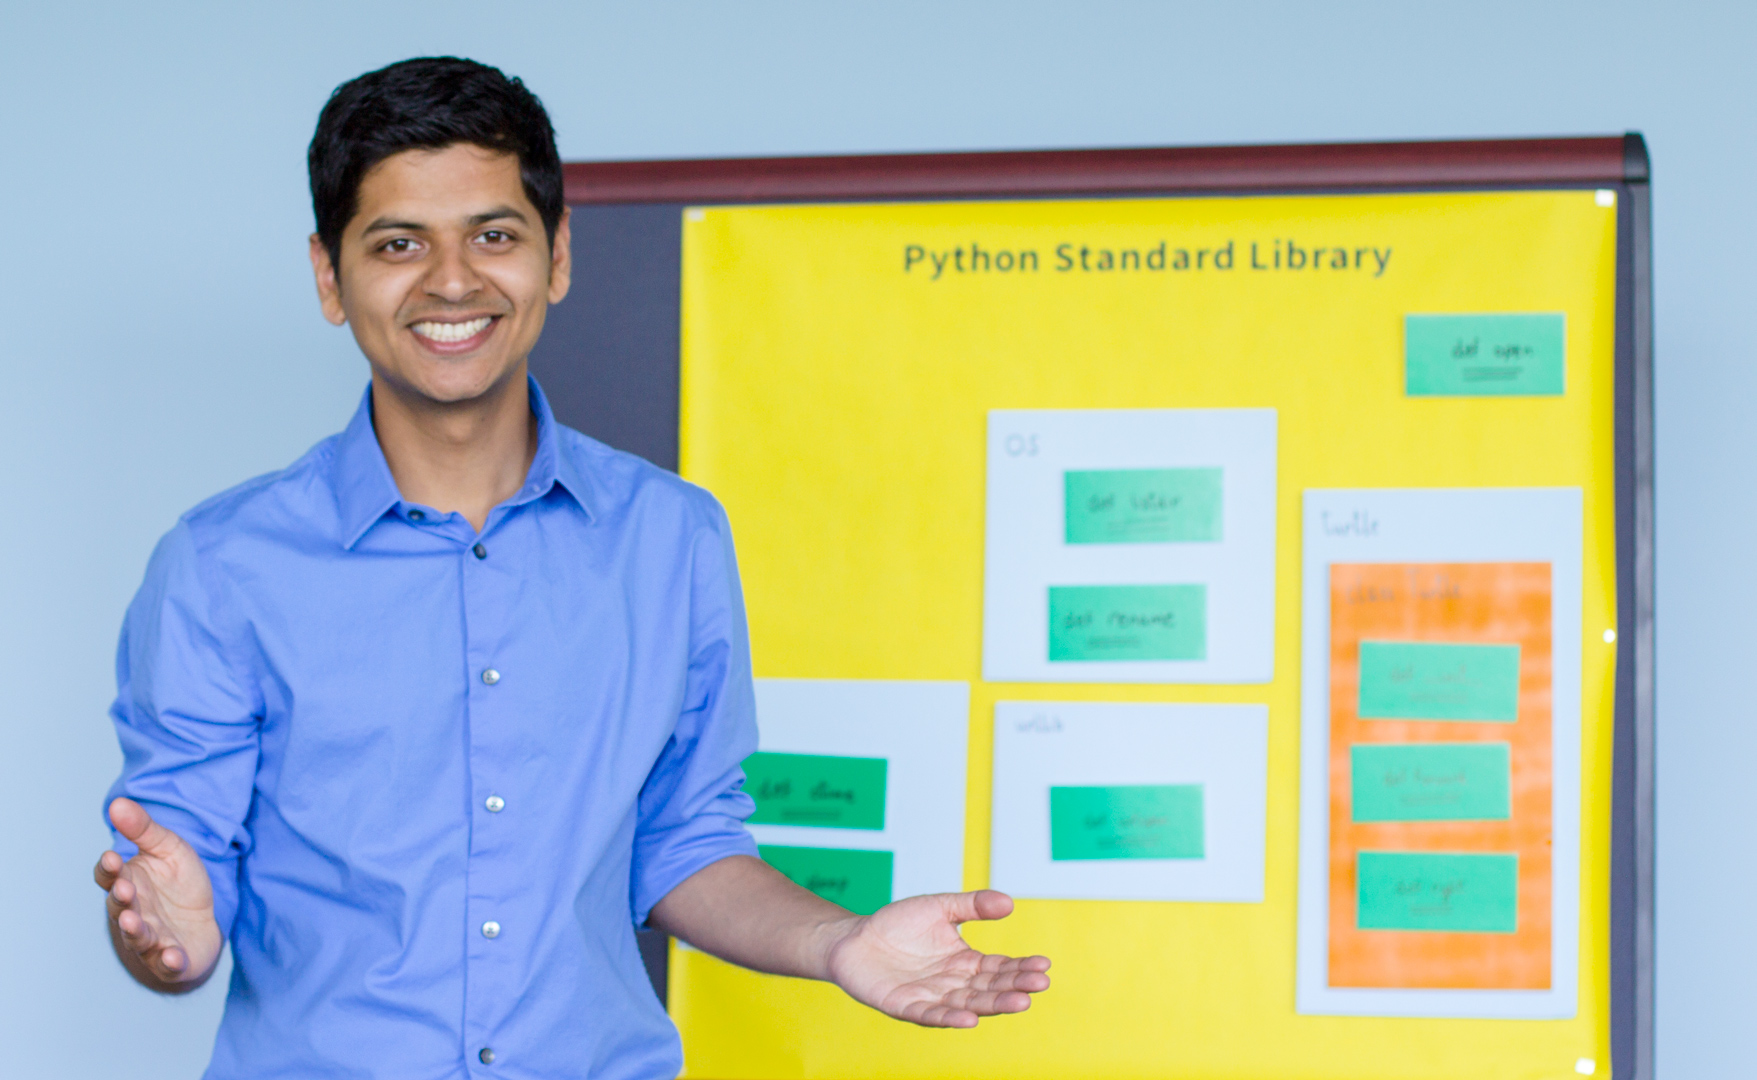 Udacity - Programming Foundations with Python - student reviews